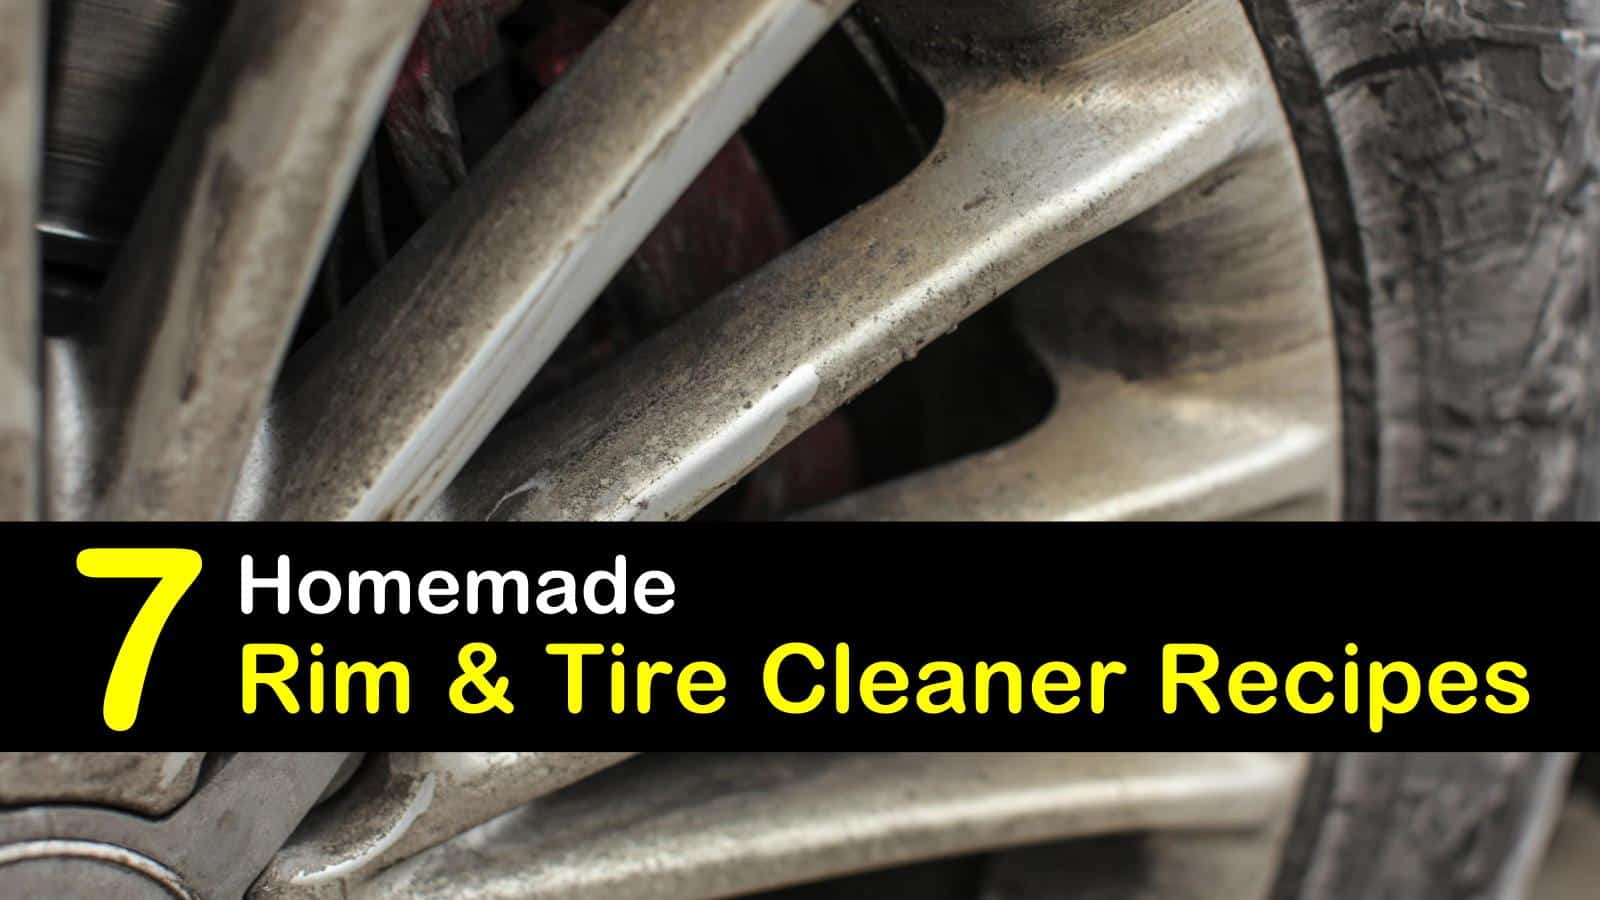 Homemade Rim And Tire Cleaner Recipes: 7 Ways to Remove Grease and Dirt from Your Wheels